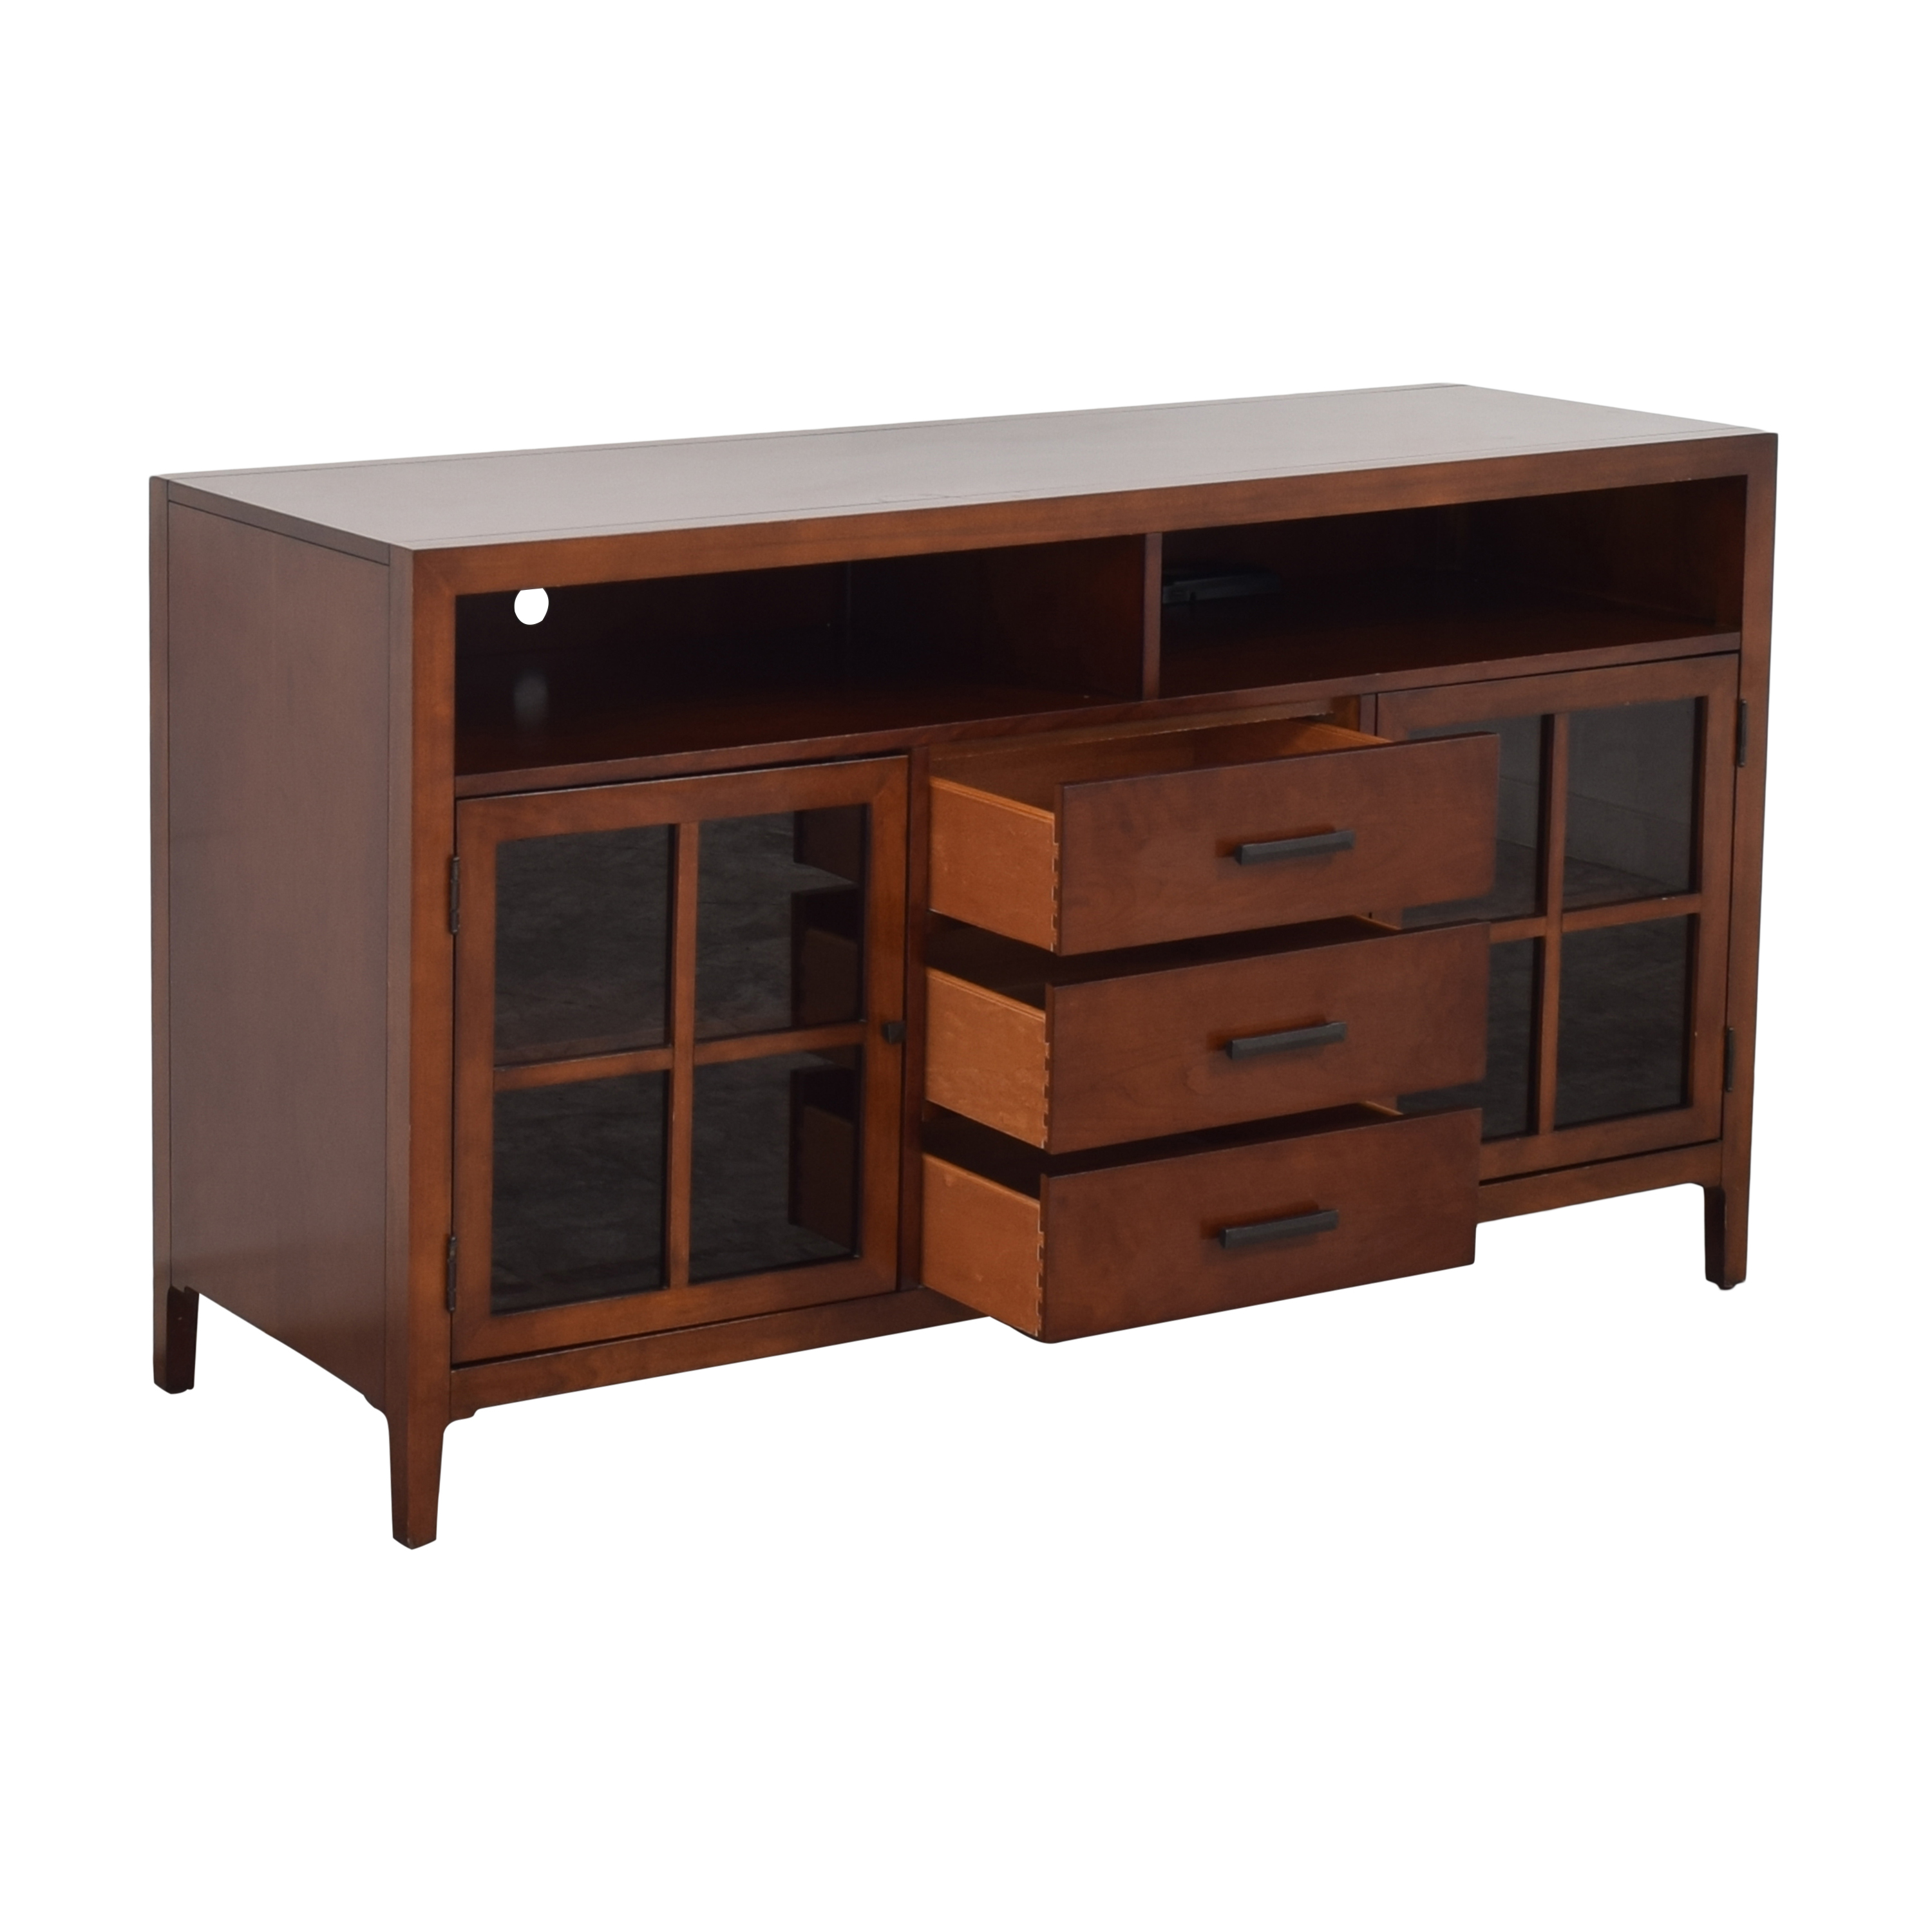 Raymour & Flanigan Raymour & Flanigan Entertainment Console by Bernhardt discount